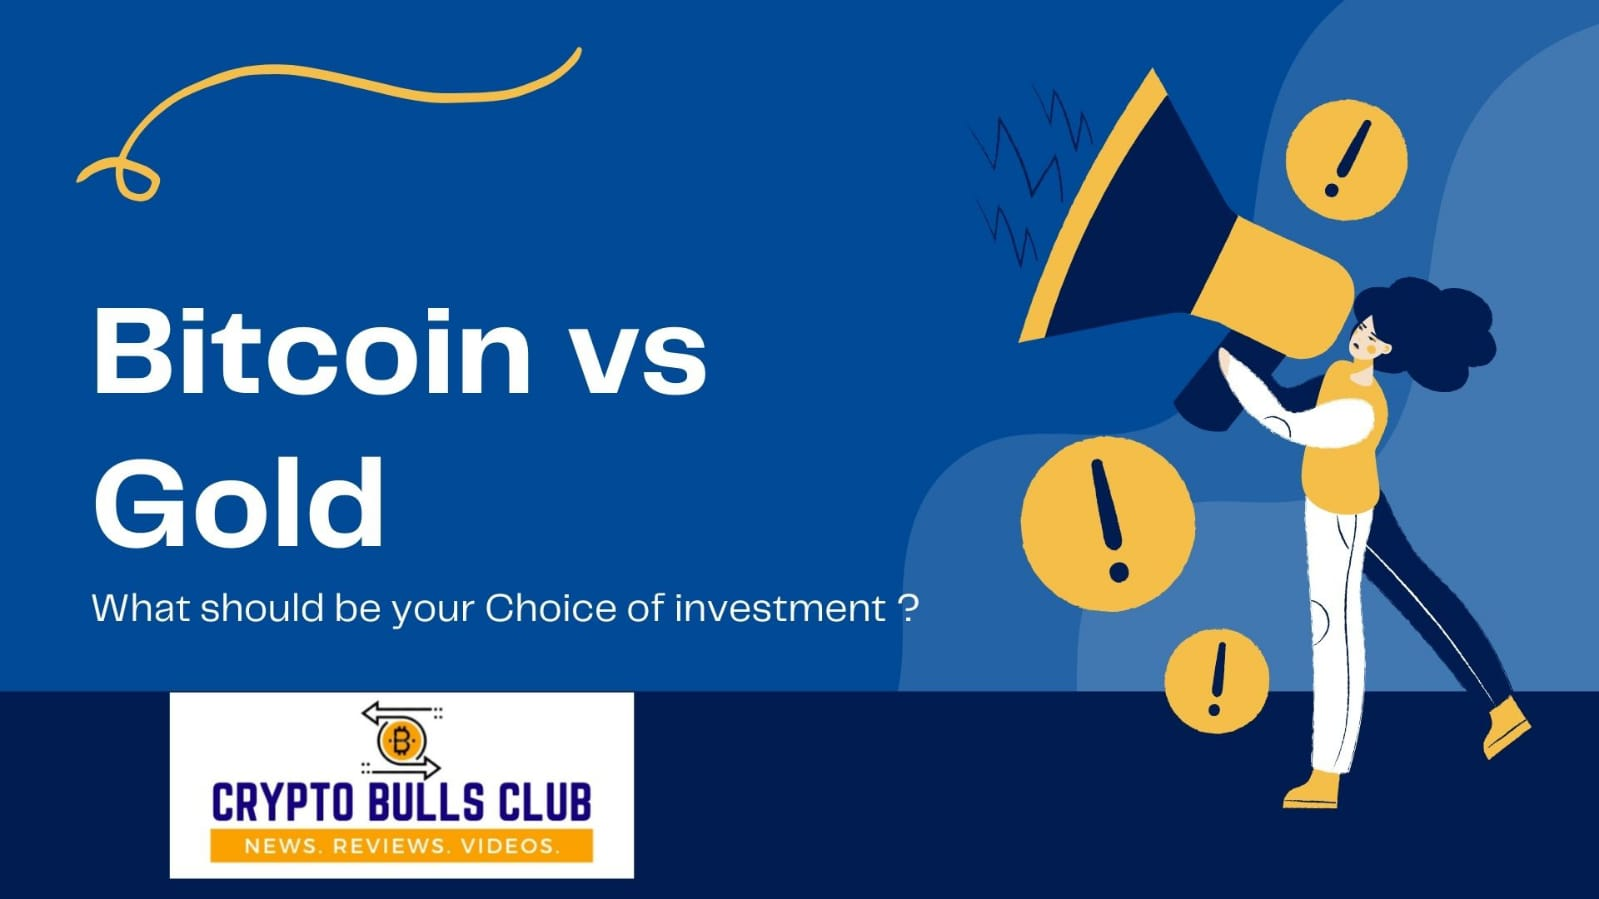 BTC or GOLD: Which should be your choice of investment?